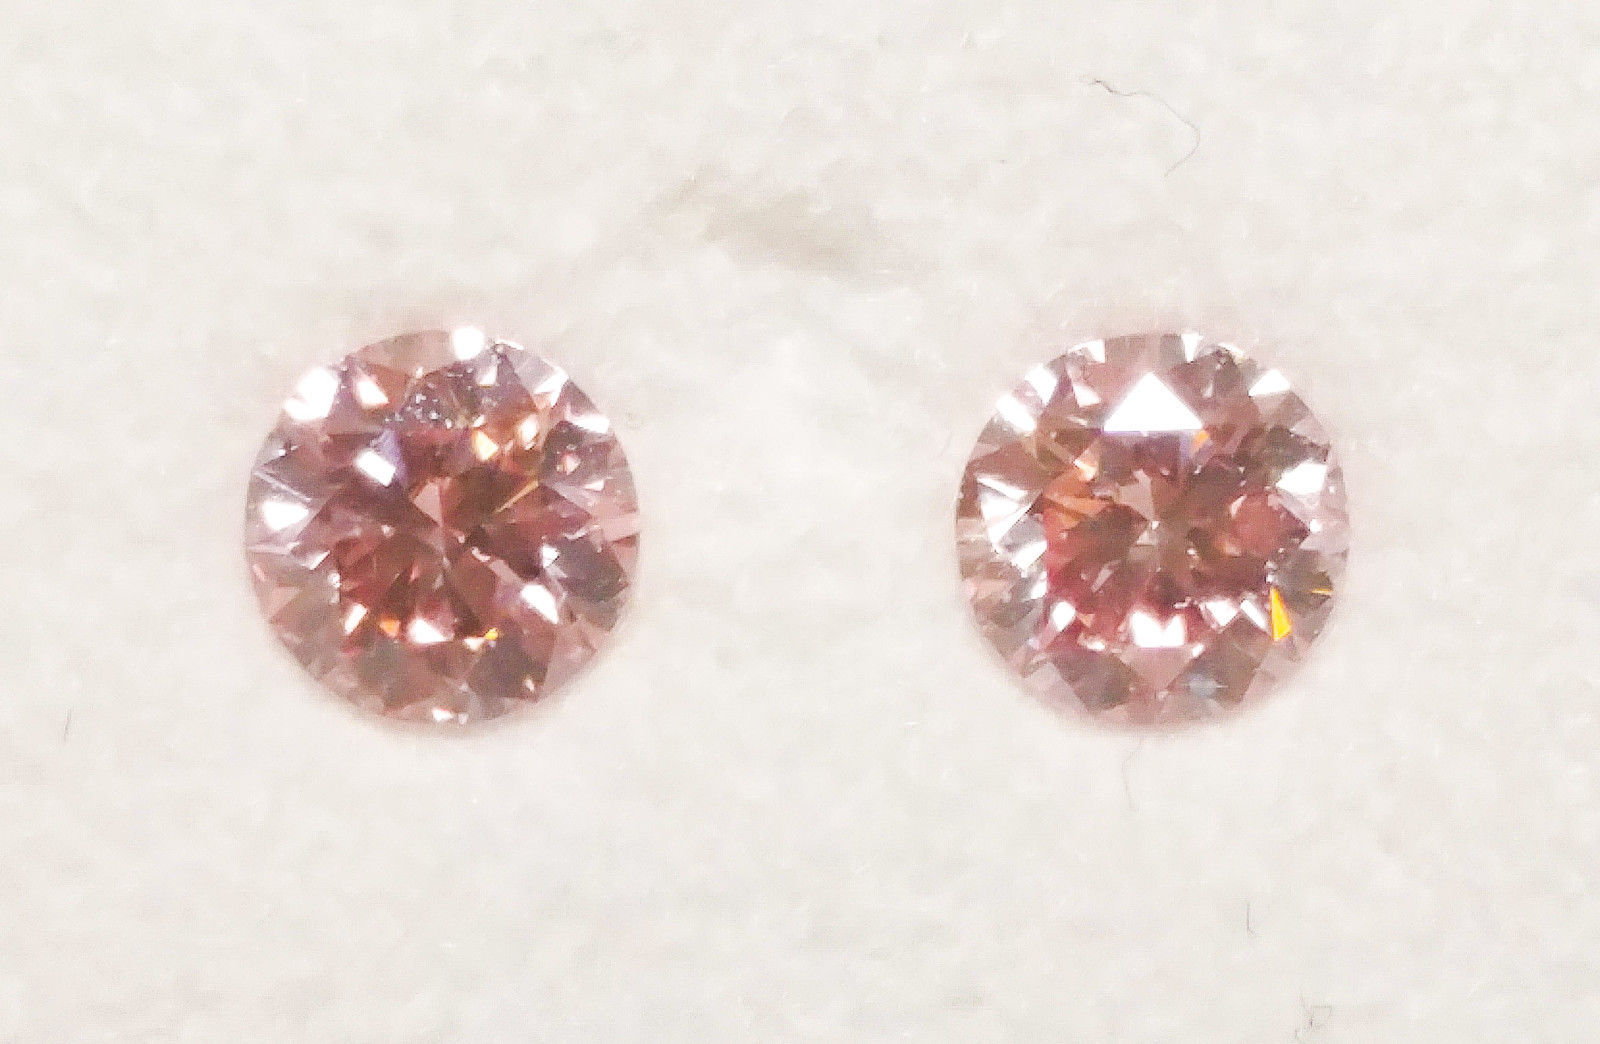 ARGYLE Pink Diamond - Natural Loose Matching Pair Of Fancy Pink CP1 SI1 Rounds